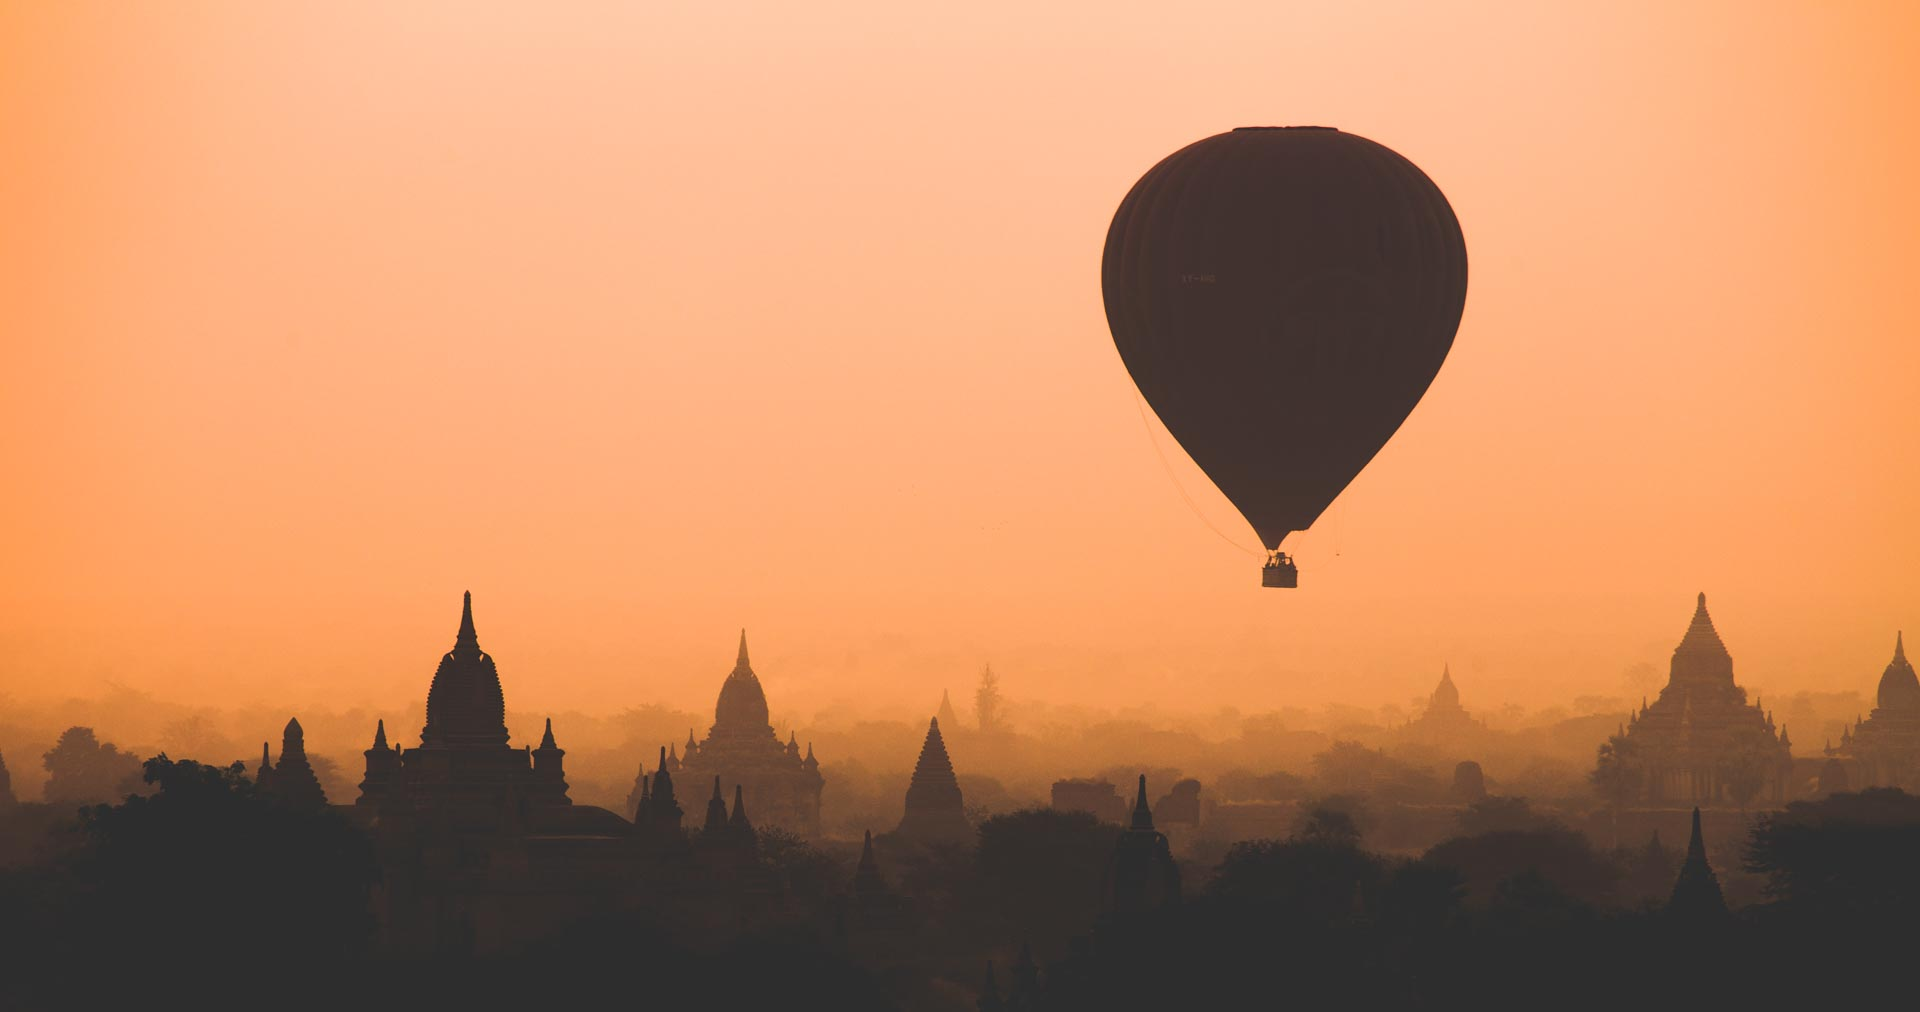 Hot air balloon over Bagan at sunrise. Myanmar